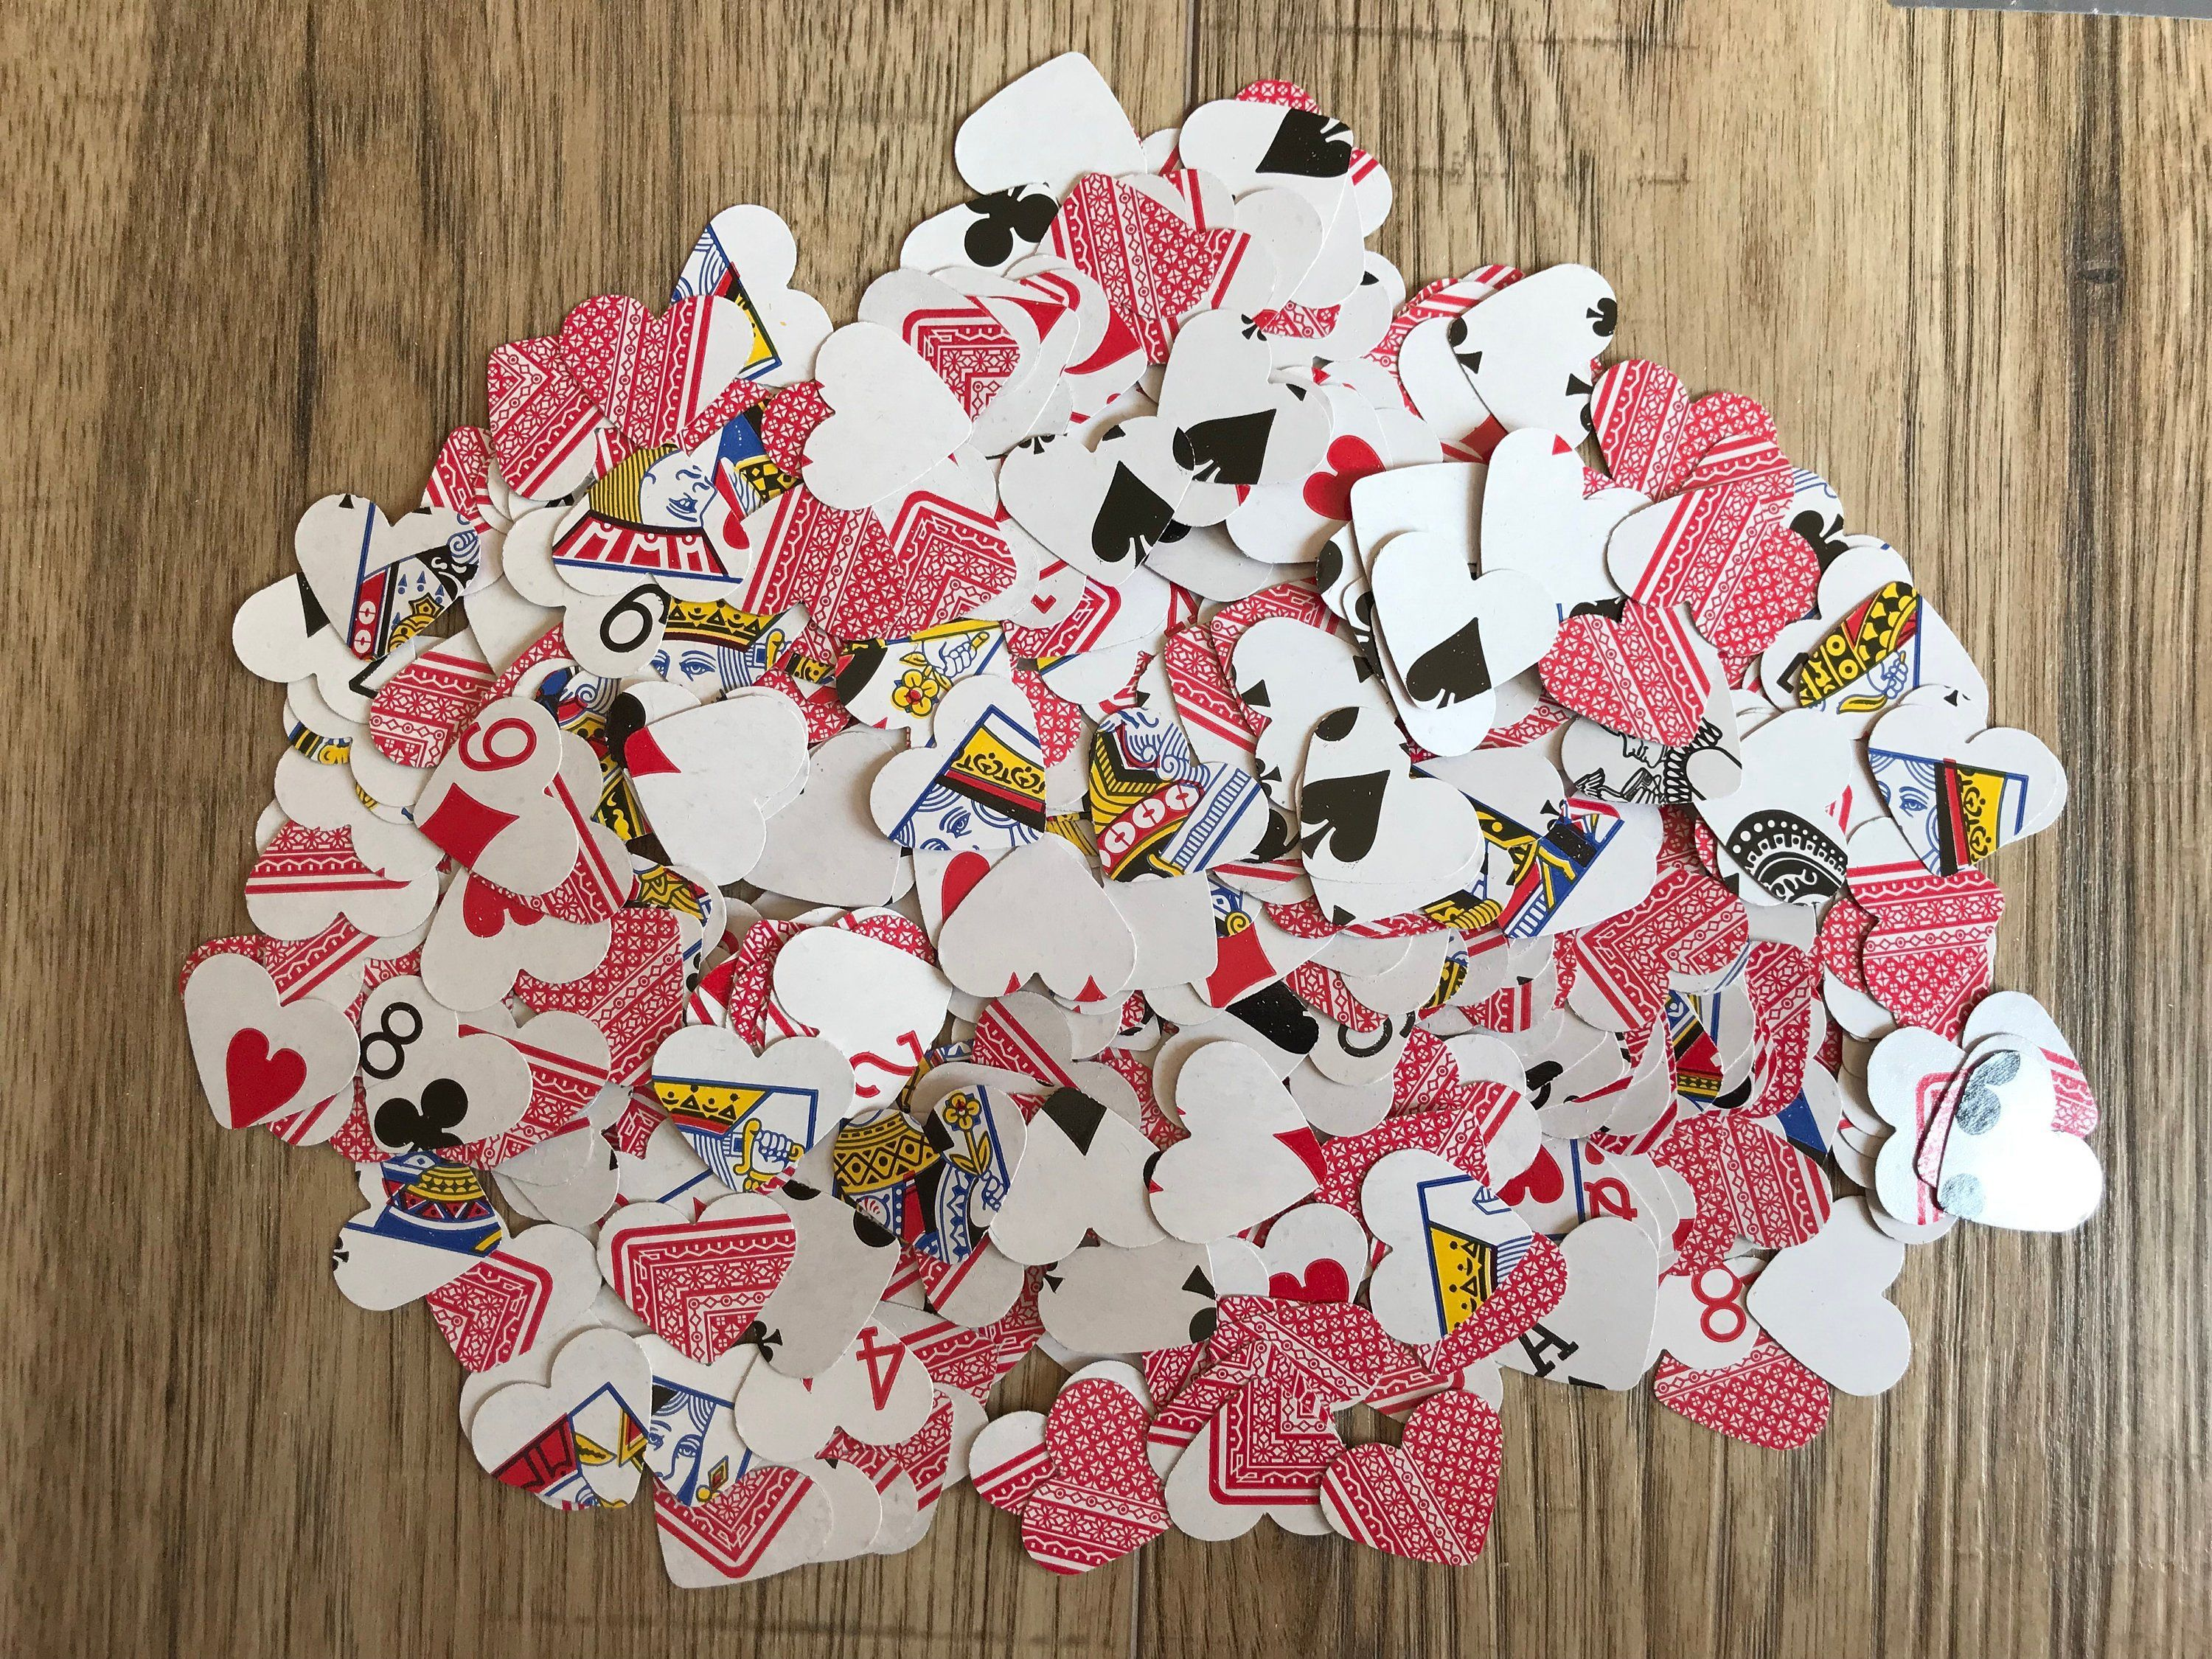 Playing Card Table Confetti  Casino  Poker Night  Mad Hatters Tea Party  Alice In Wonderland Wedding